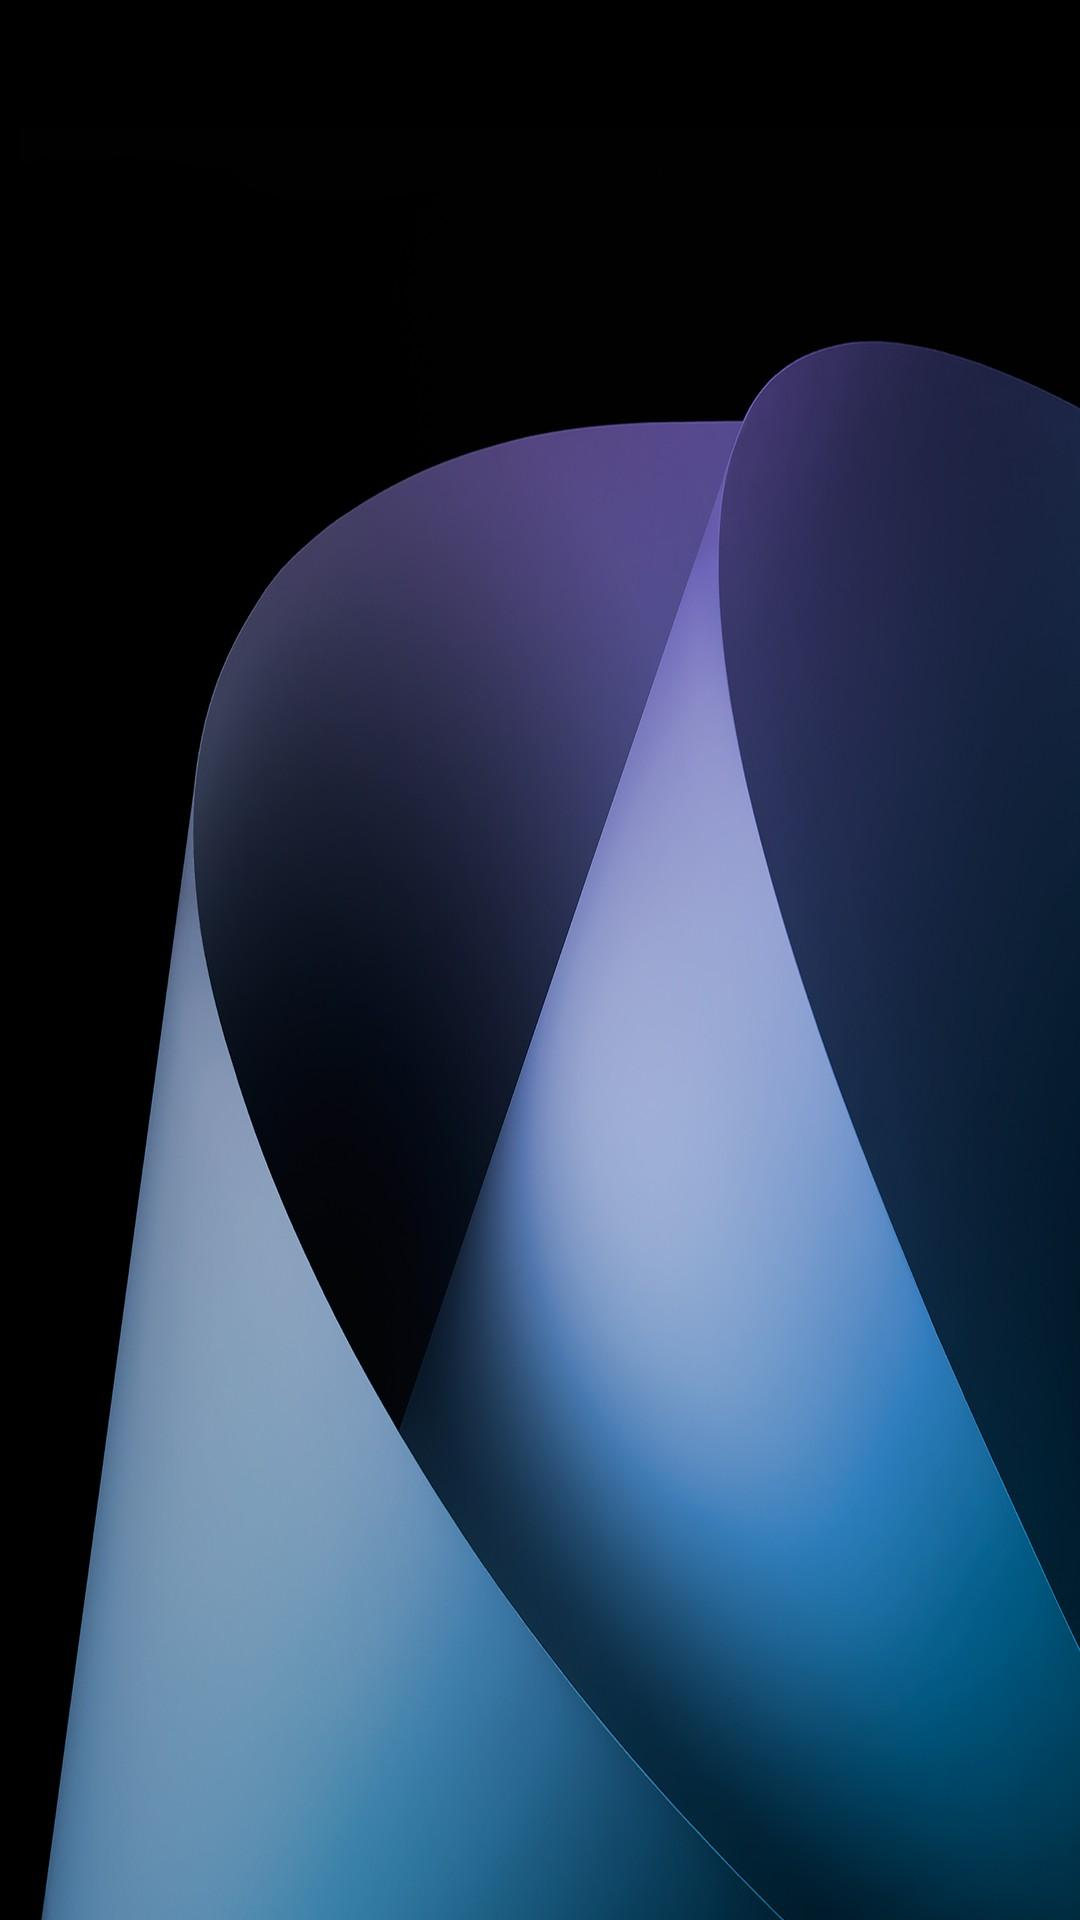 Android 10 Wallpapers - Wallpaper Cave